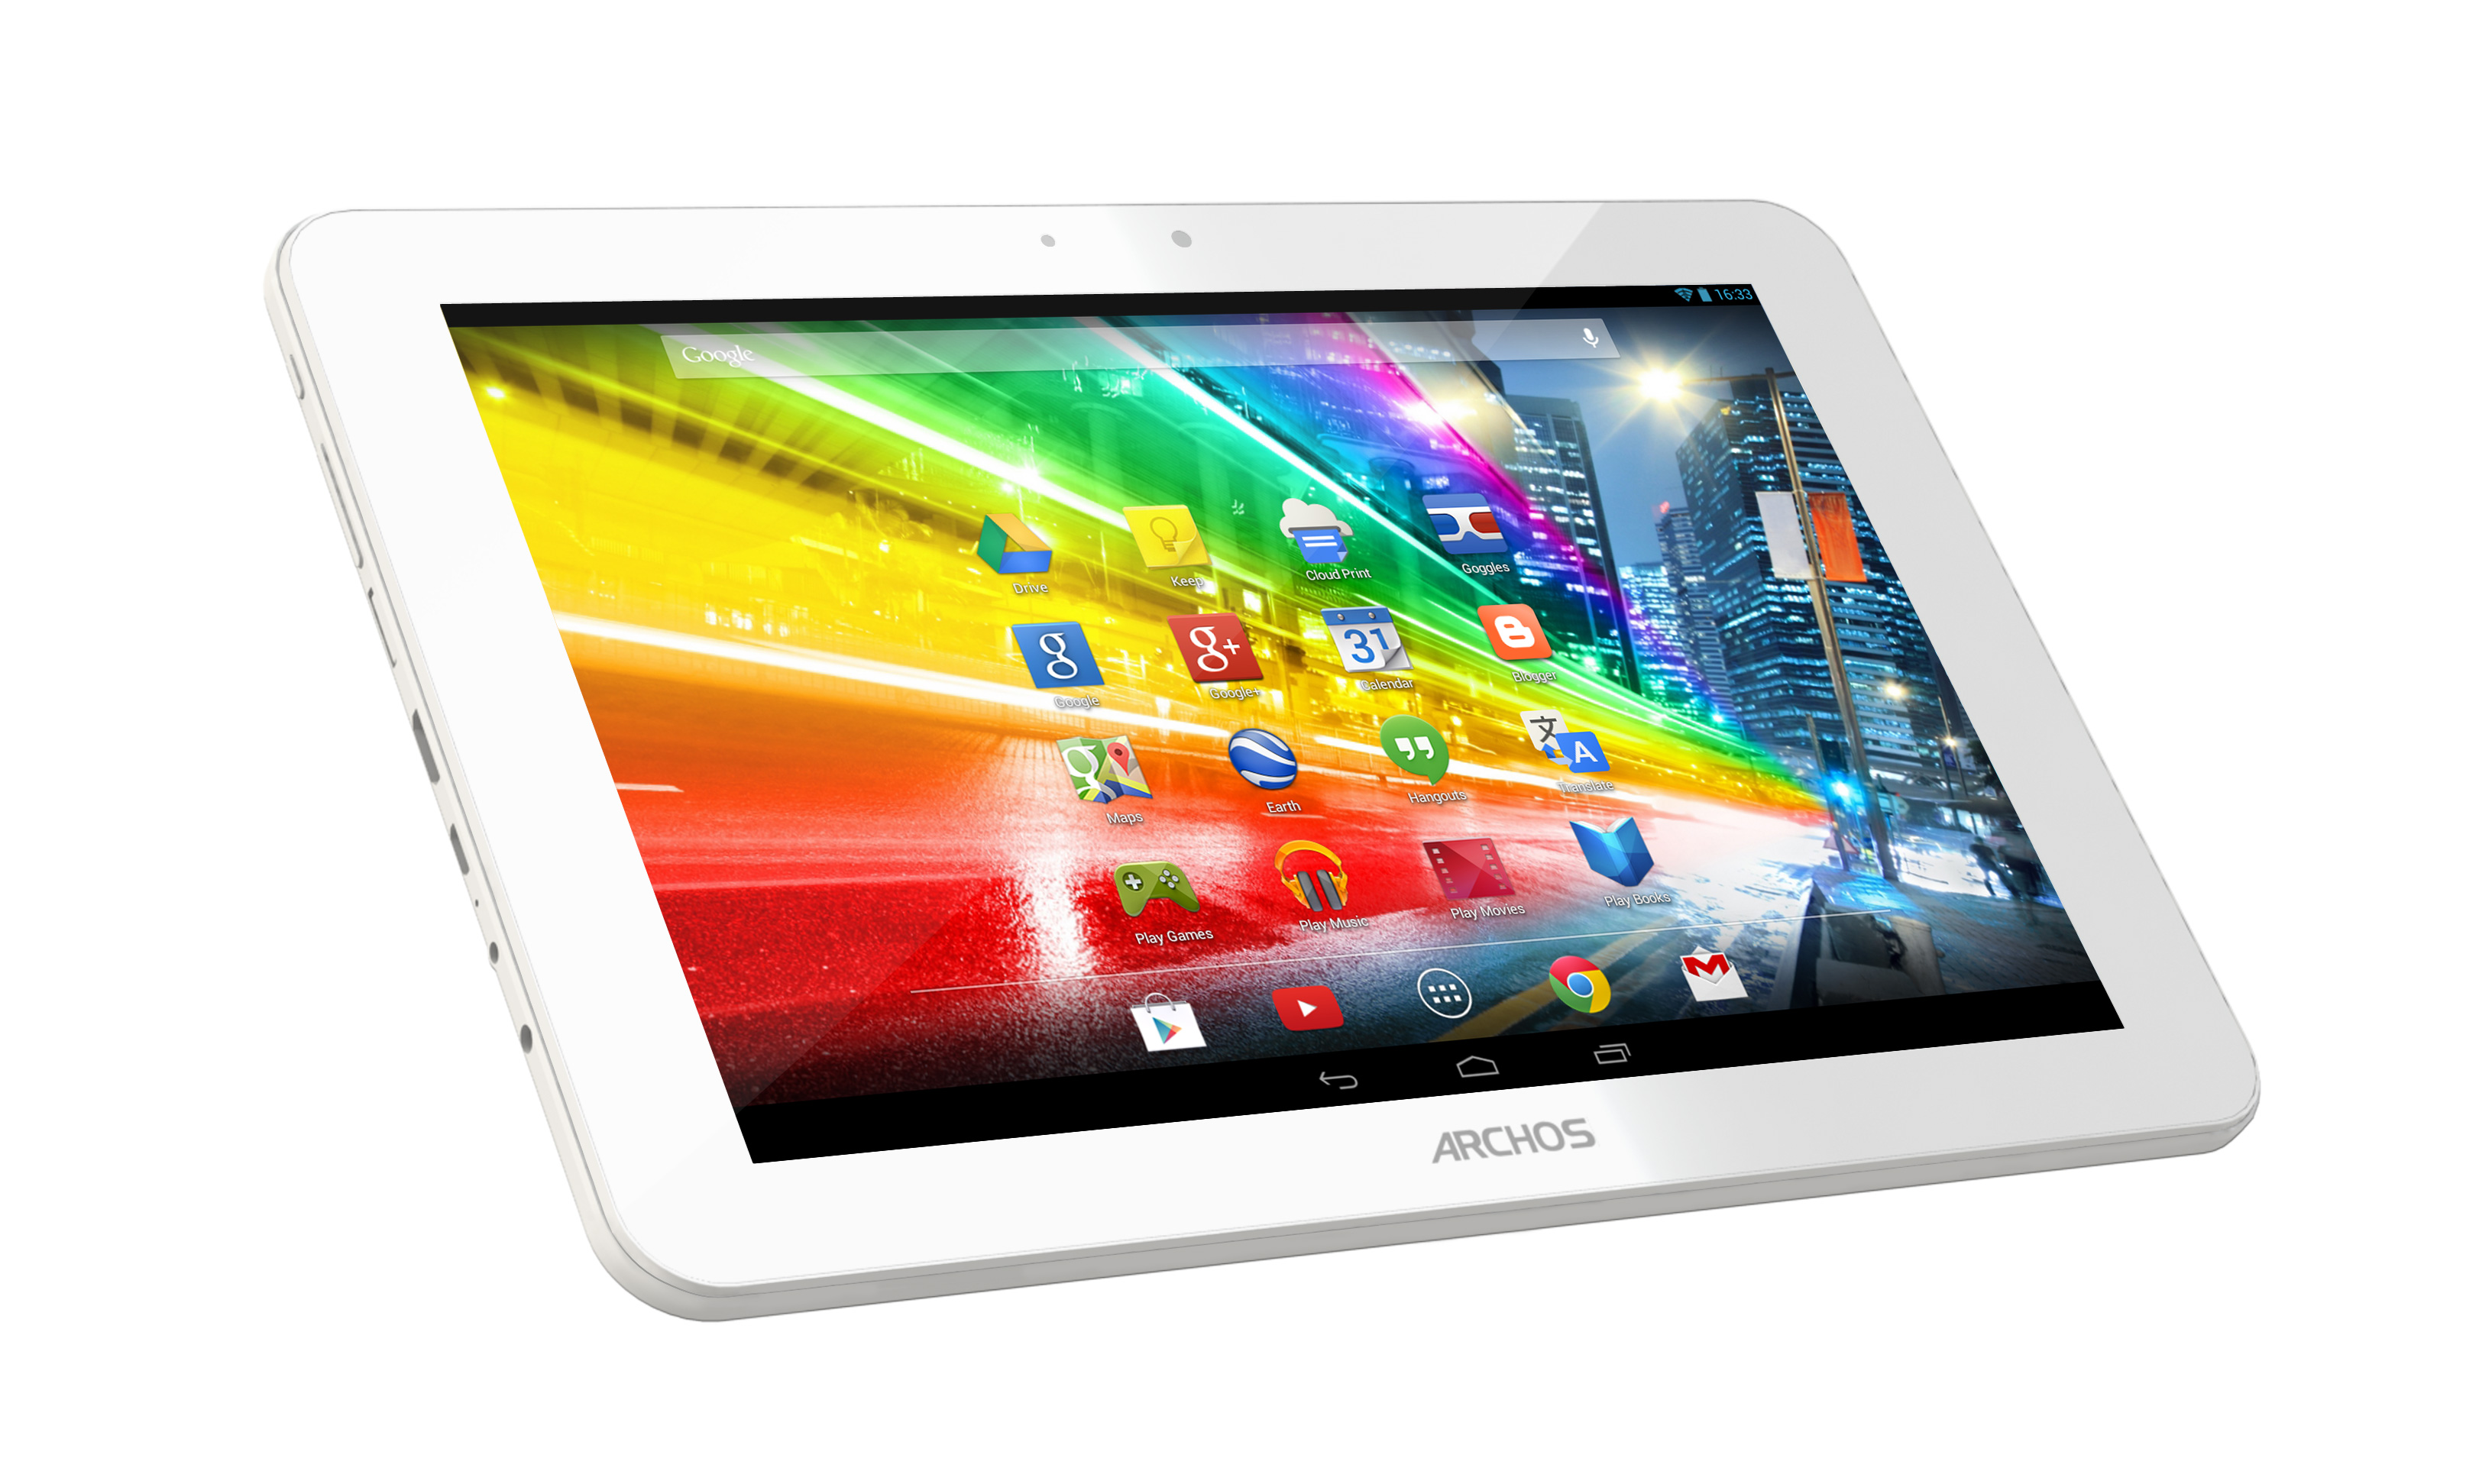 ARCHOS Challenging Premium Android Tablet Makers with 3 ...